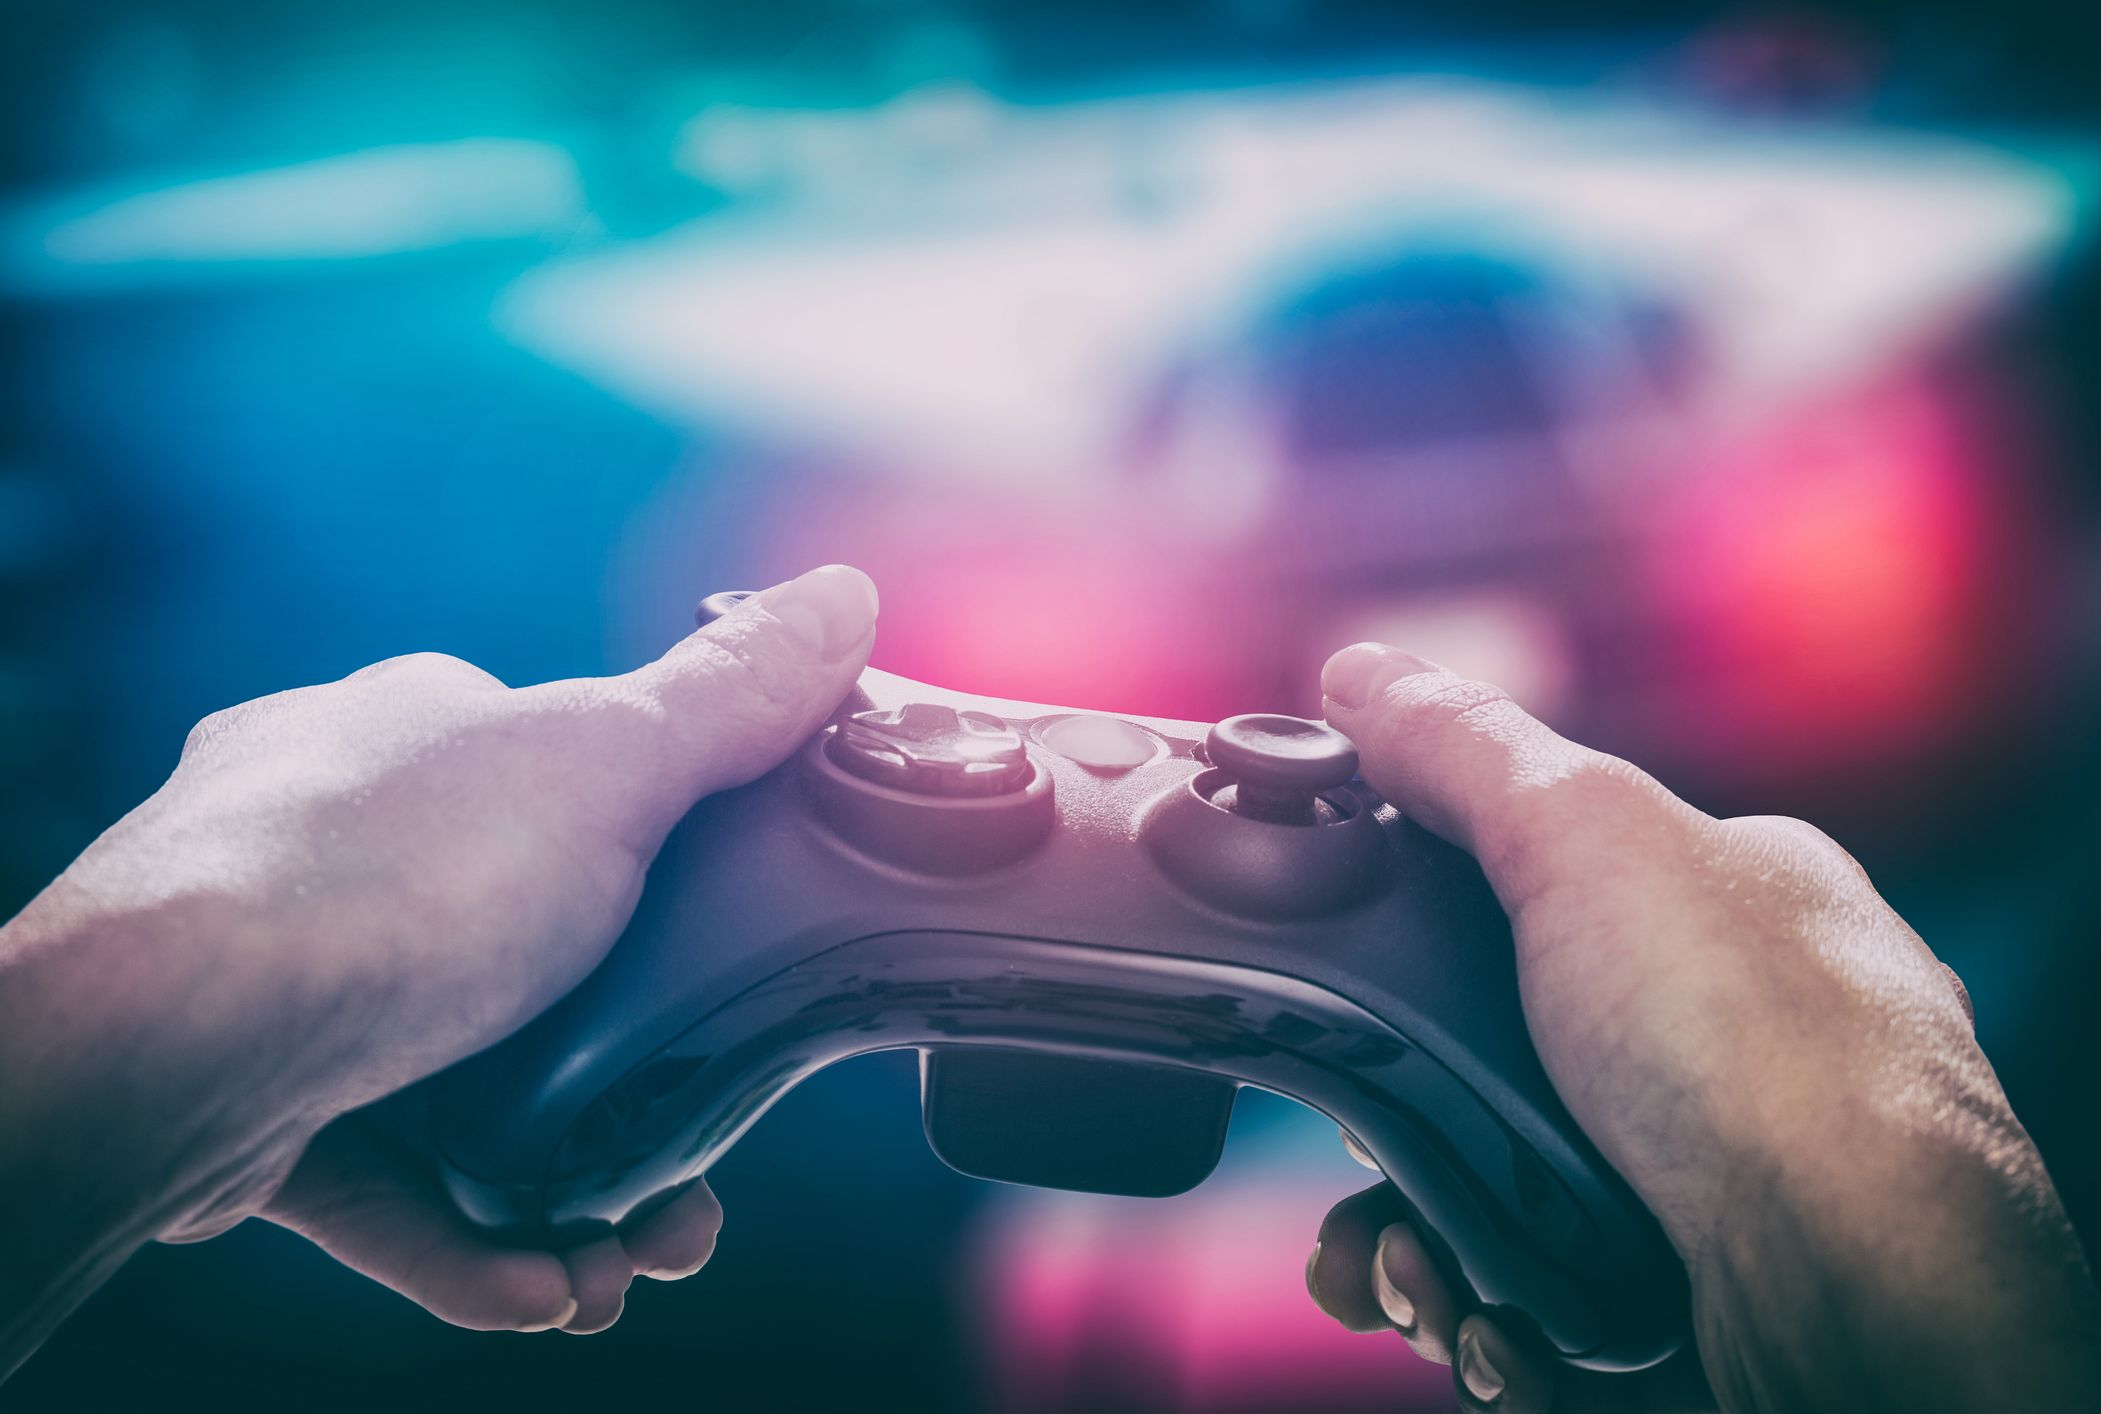 Growing Popularity Of Free And Casual Games